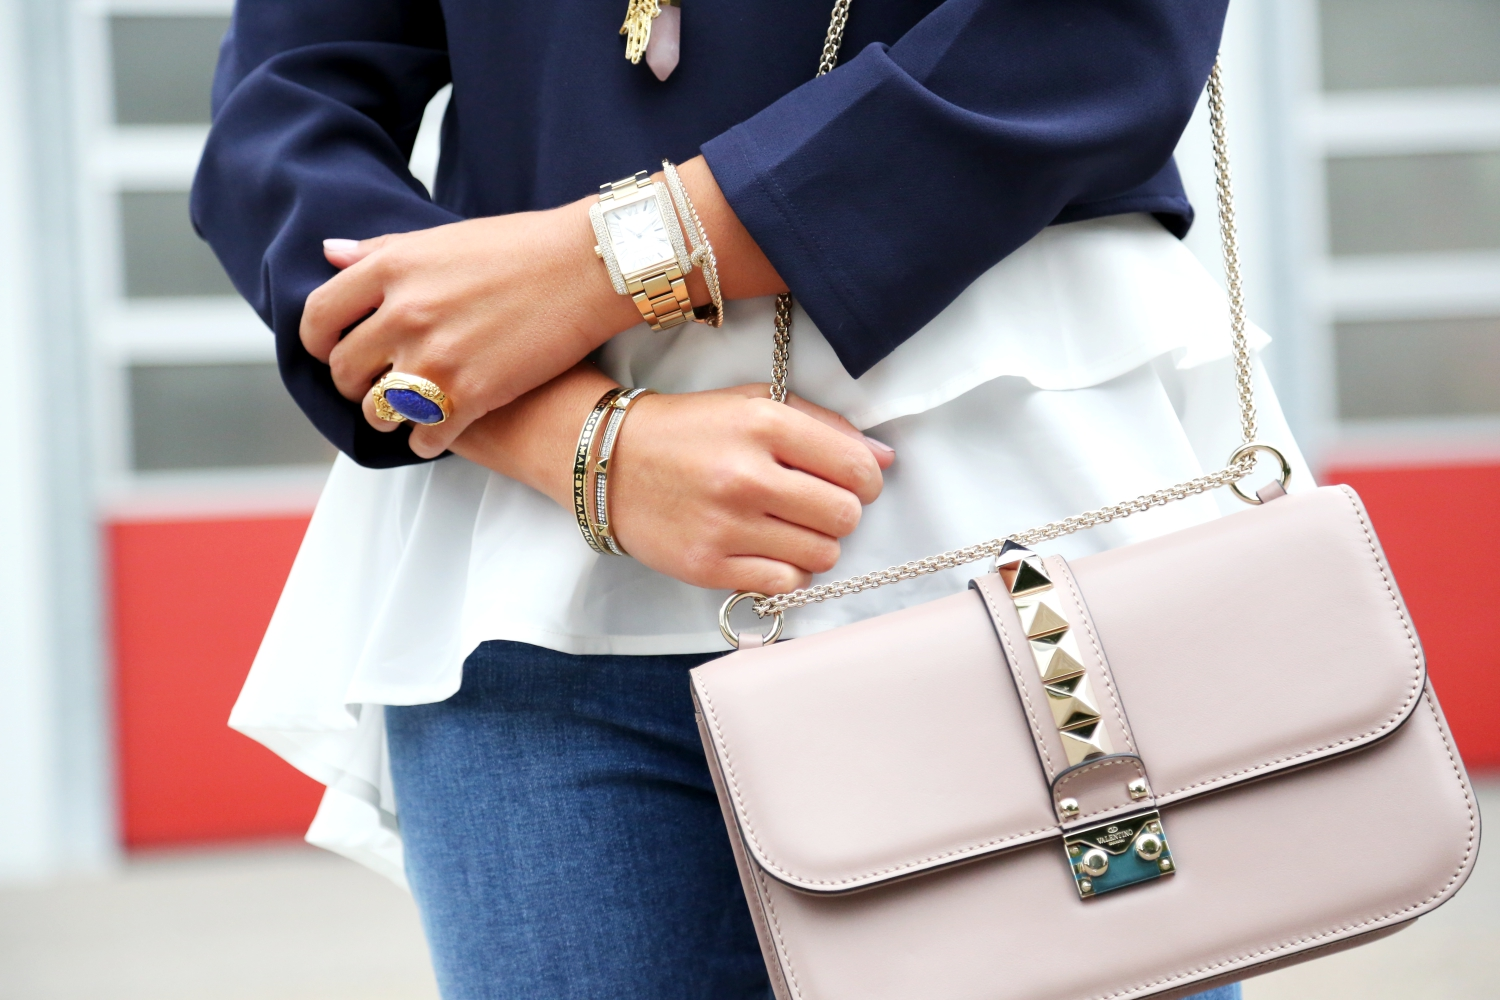 nikkie-look-valentino-garavani-glam-lock-bag-michaelkors-watch